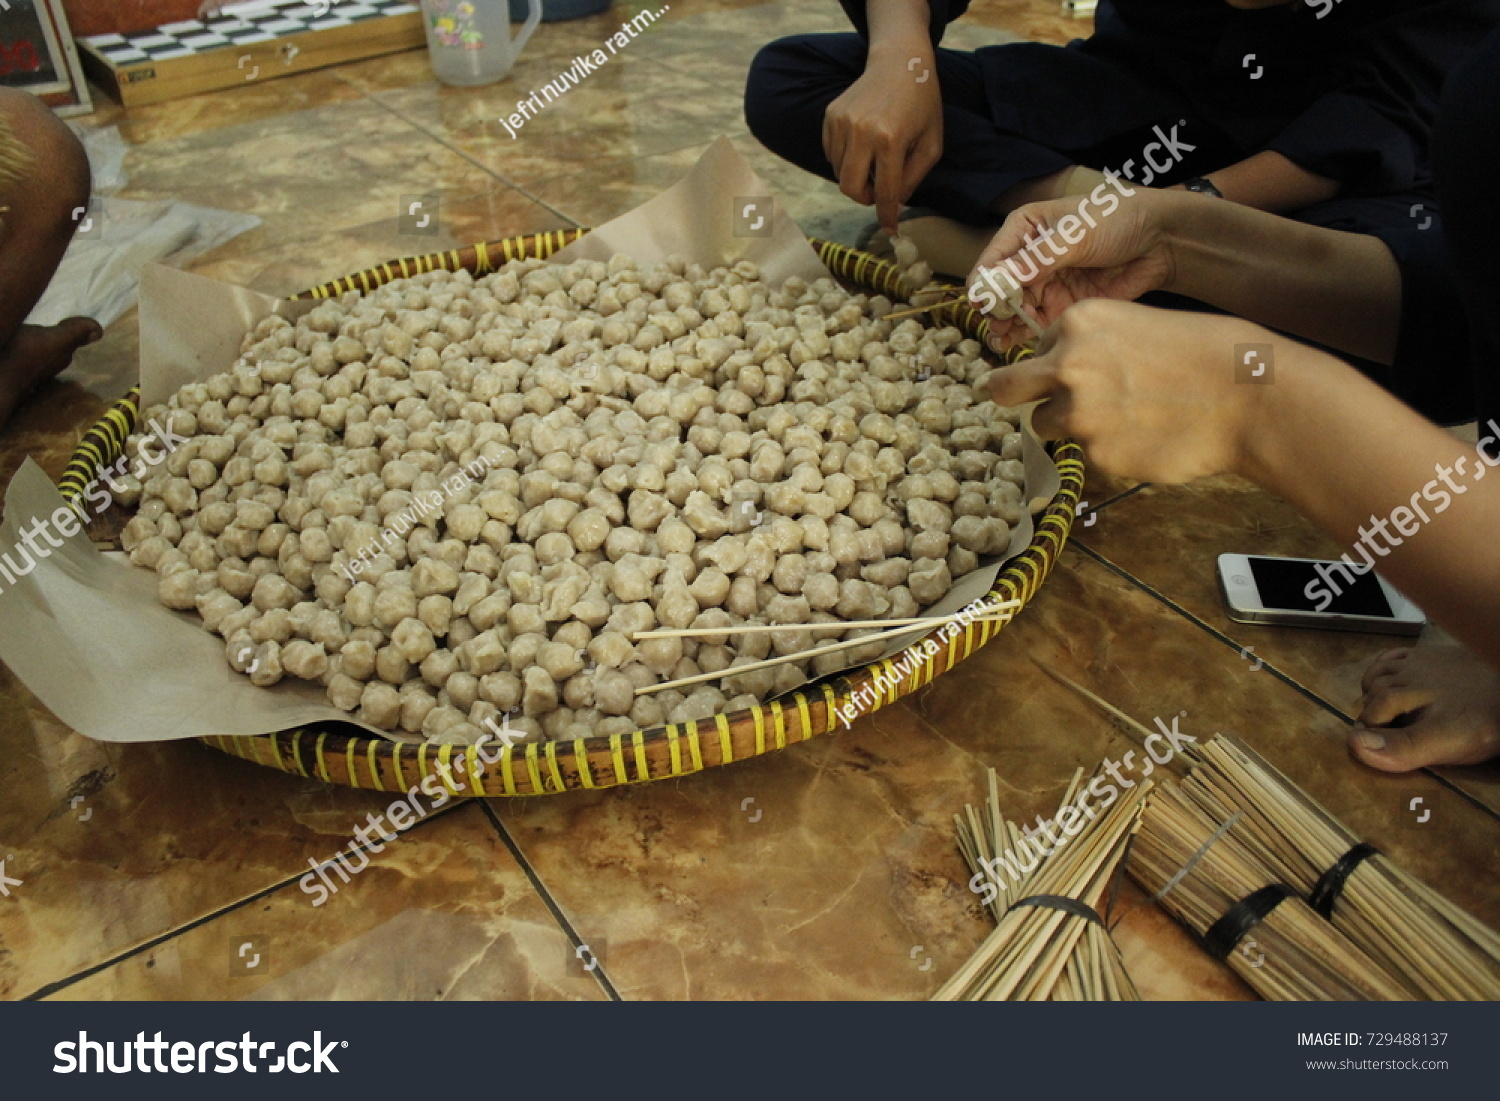 Pentol indonesian special food stock photo 729488137 shutterstock altavistaventures Image collections